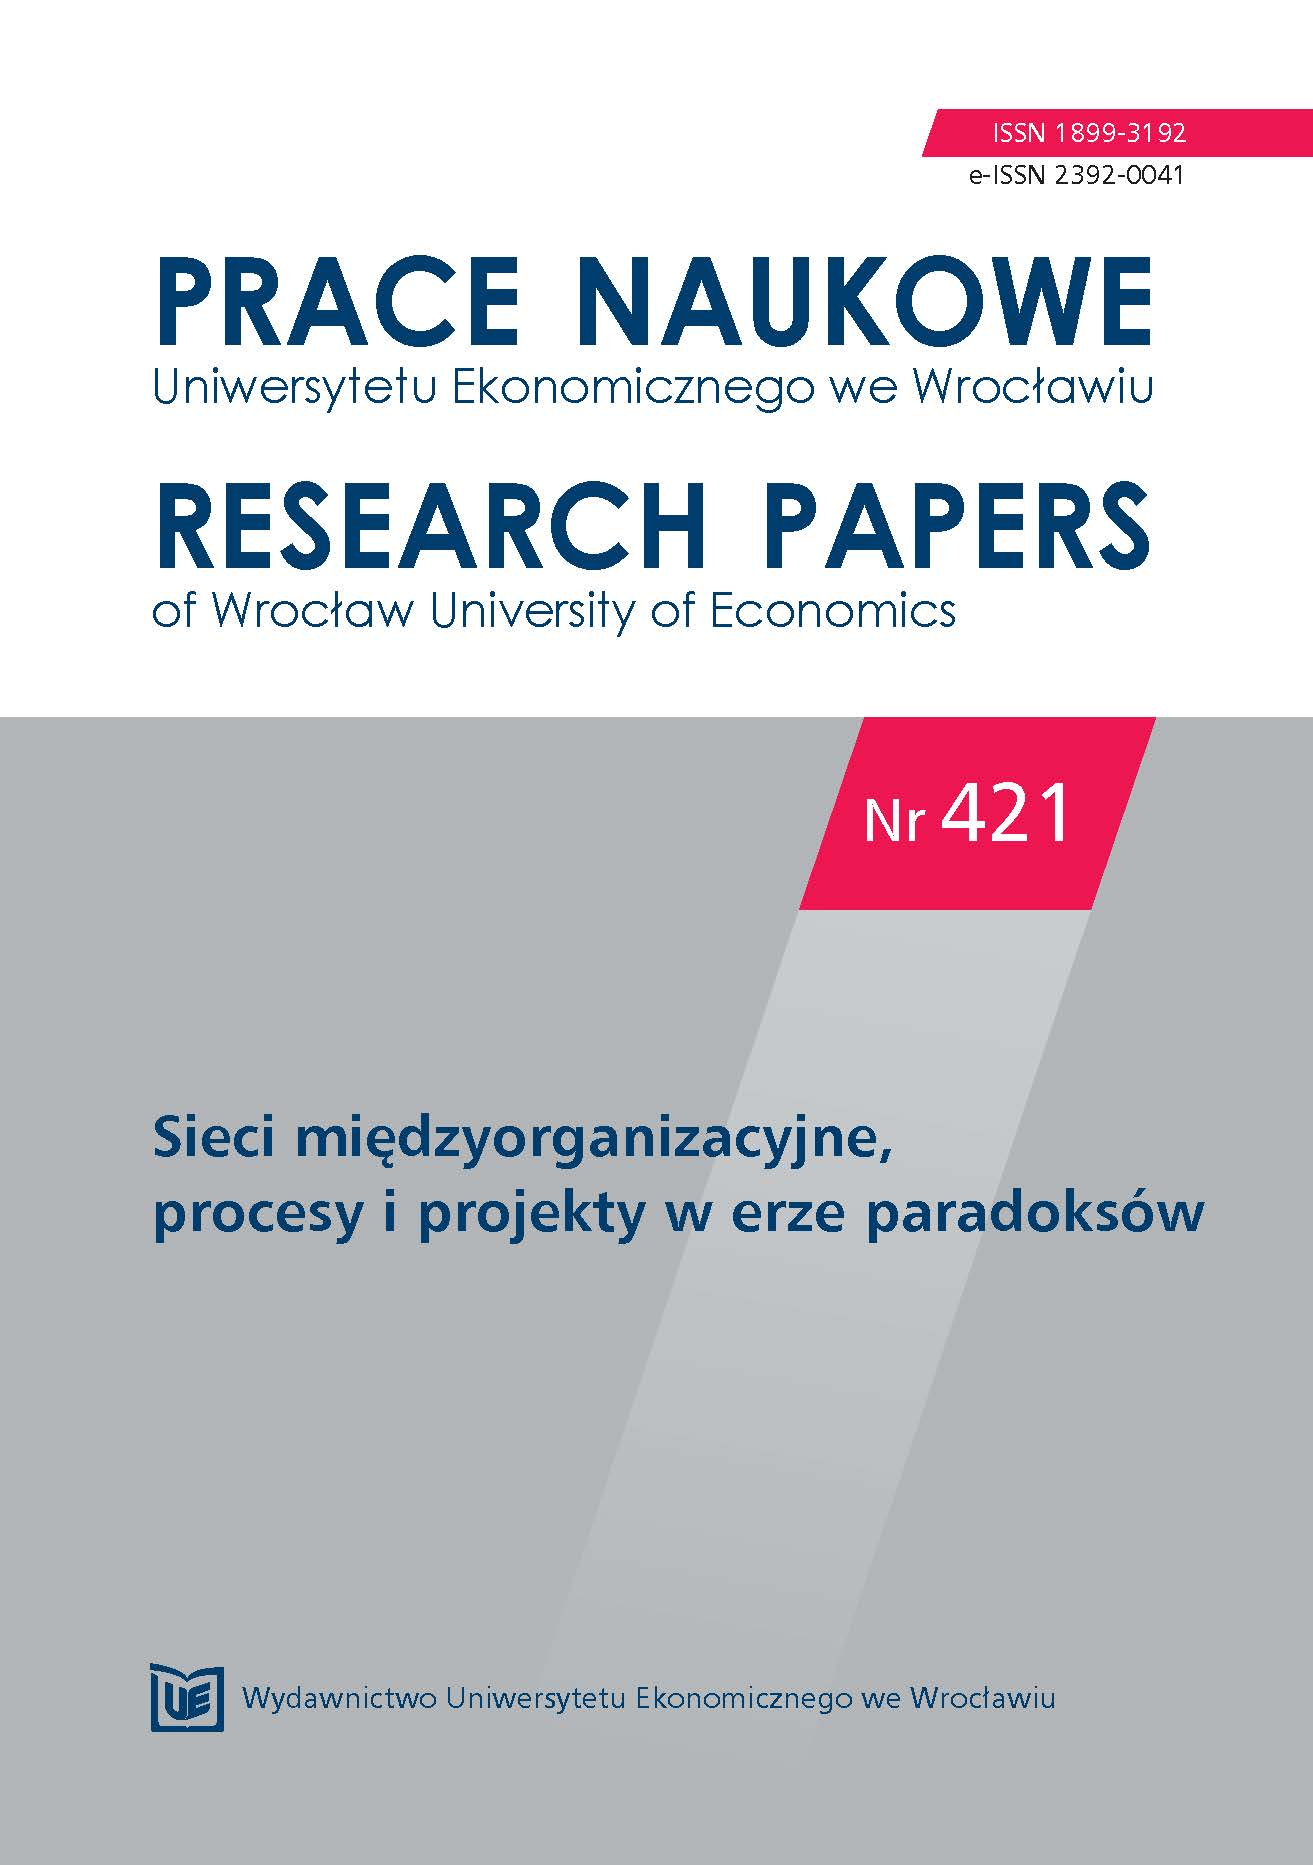 research papers on education management 0 research papers in management studies 'sino-foreign joint ventures' versus 'wholly foreign owned enterprises' in the people's republic of china.